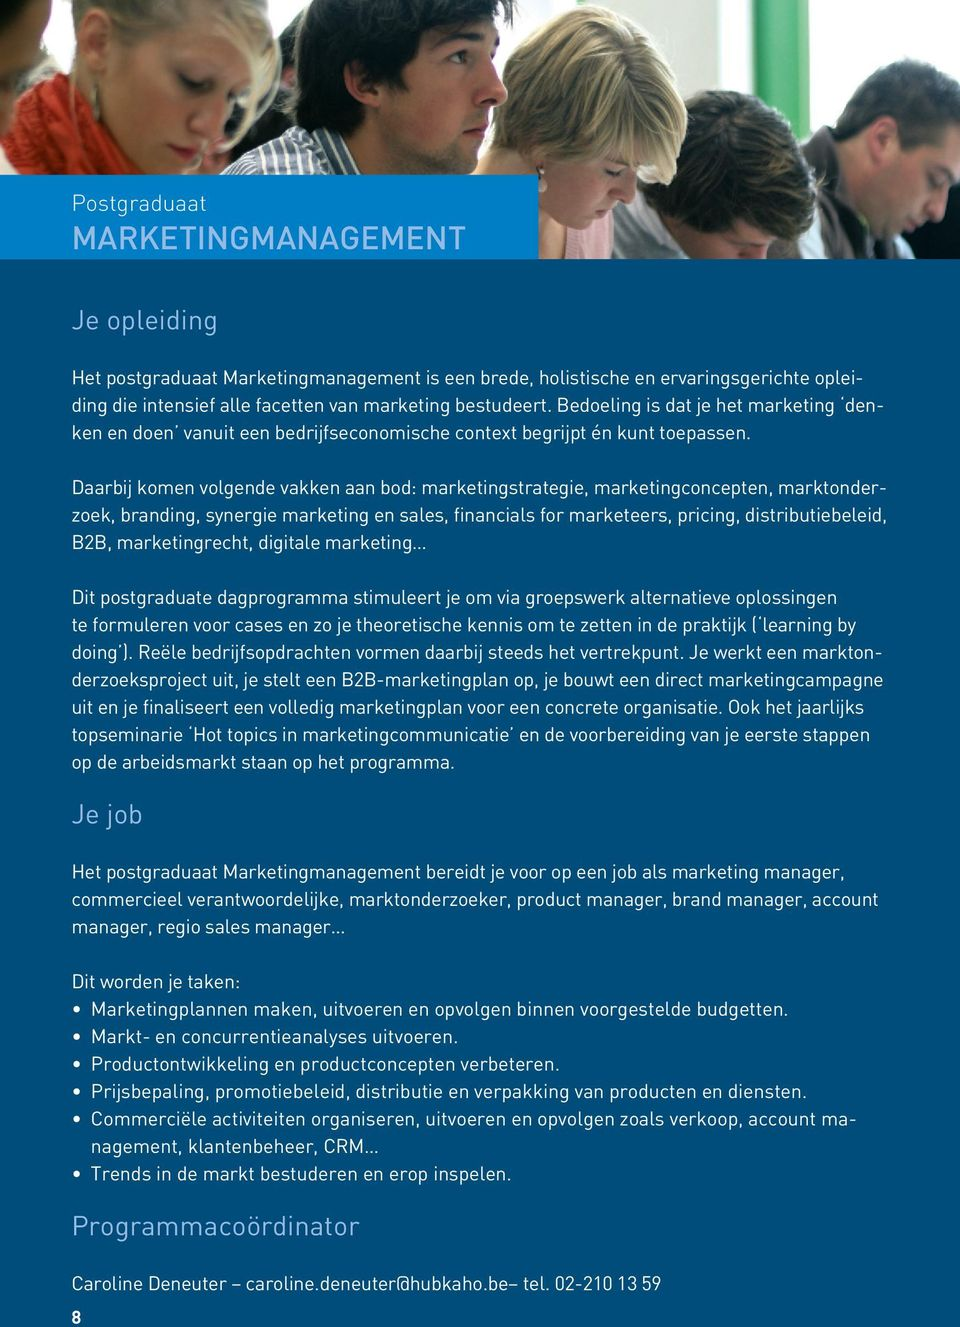 Daarbij komen volgende vakken aan bod: marketingstrategie, marketingconcepten, marktonderzoek, branding, synergie marketing en sales, financials for marketeers, pricing, distributiebeleid, B2B,